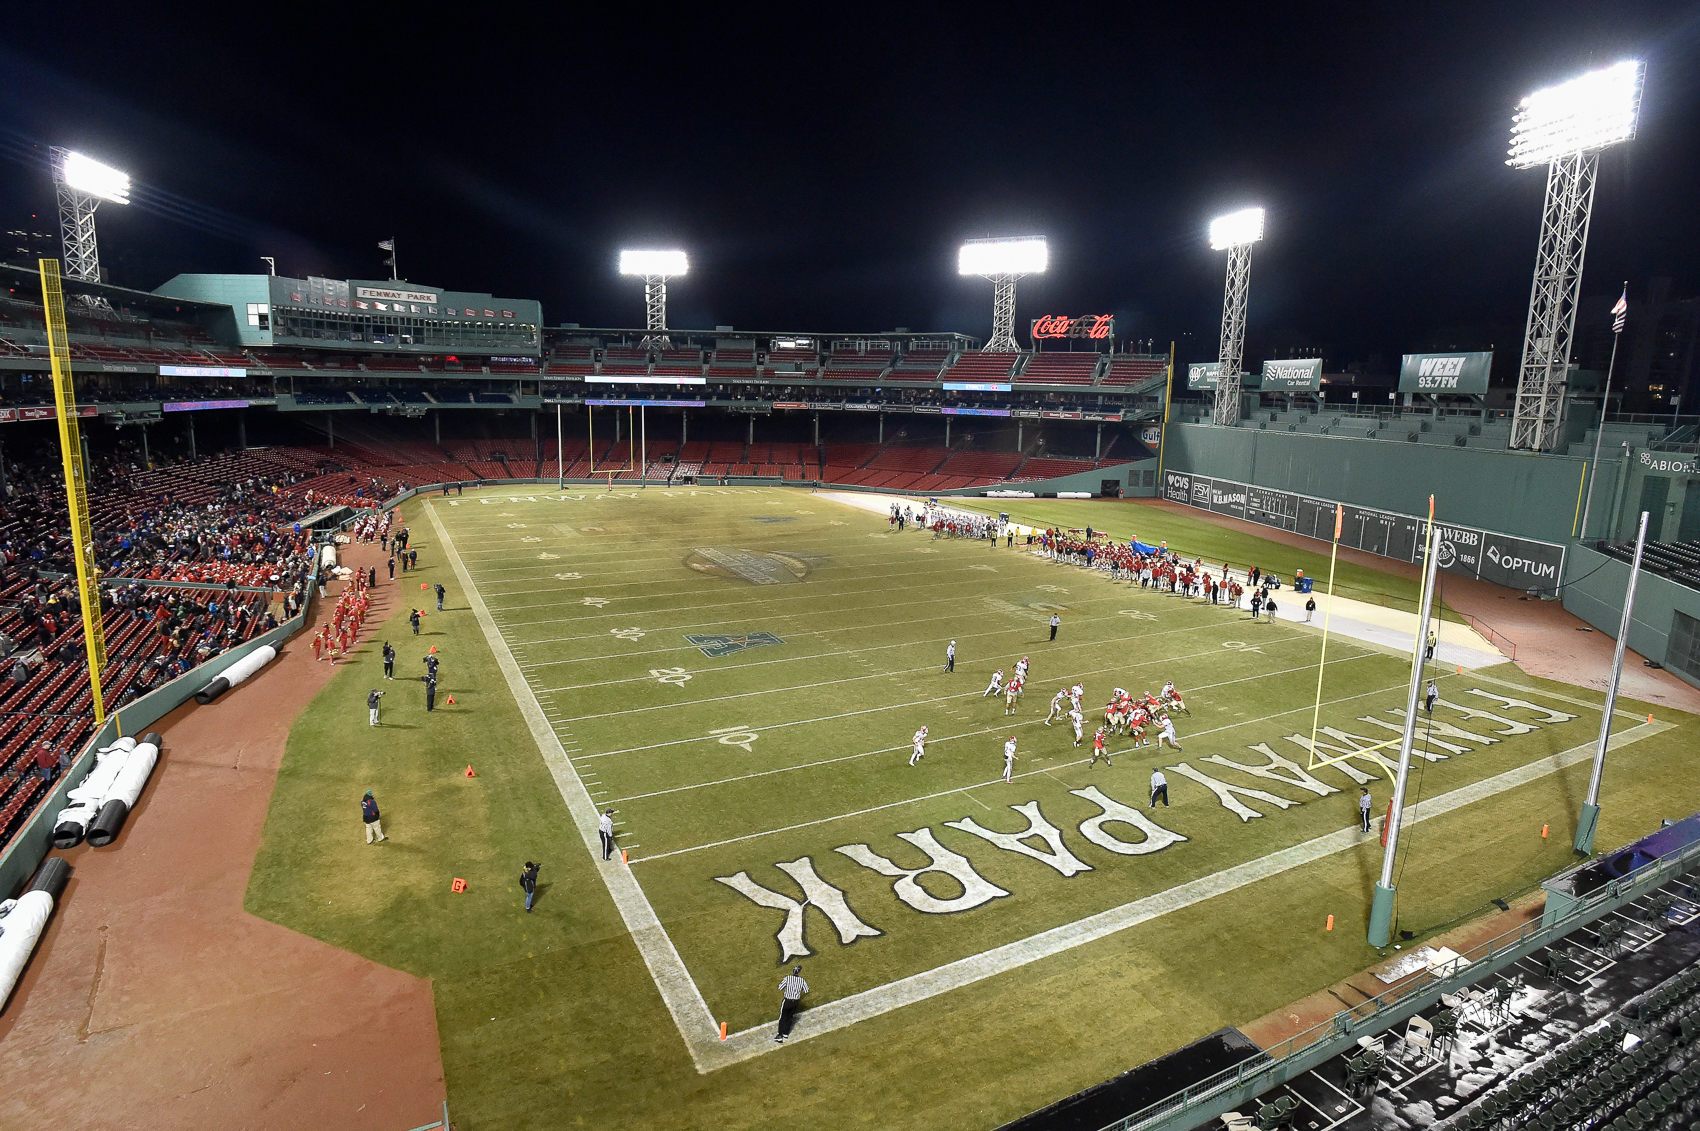 Members of Masconomet football team compete against Everett during the 2017 Fenway Gridiron game at Fenway Park, Wednesday, Nov. 22, 2017. [Wicked Local Staff Photo / David Sokol]